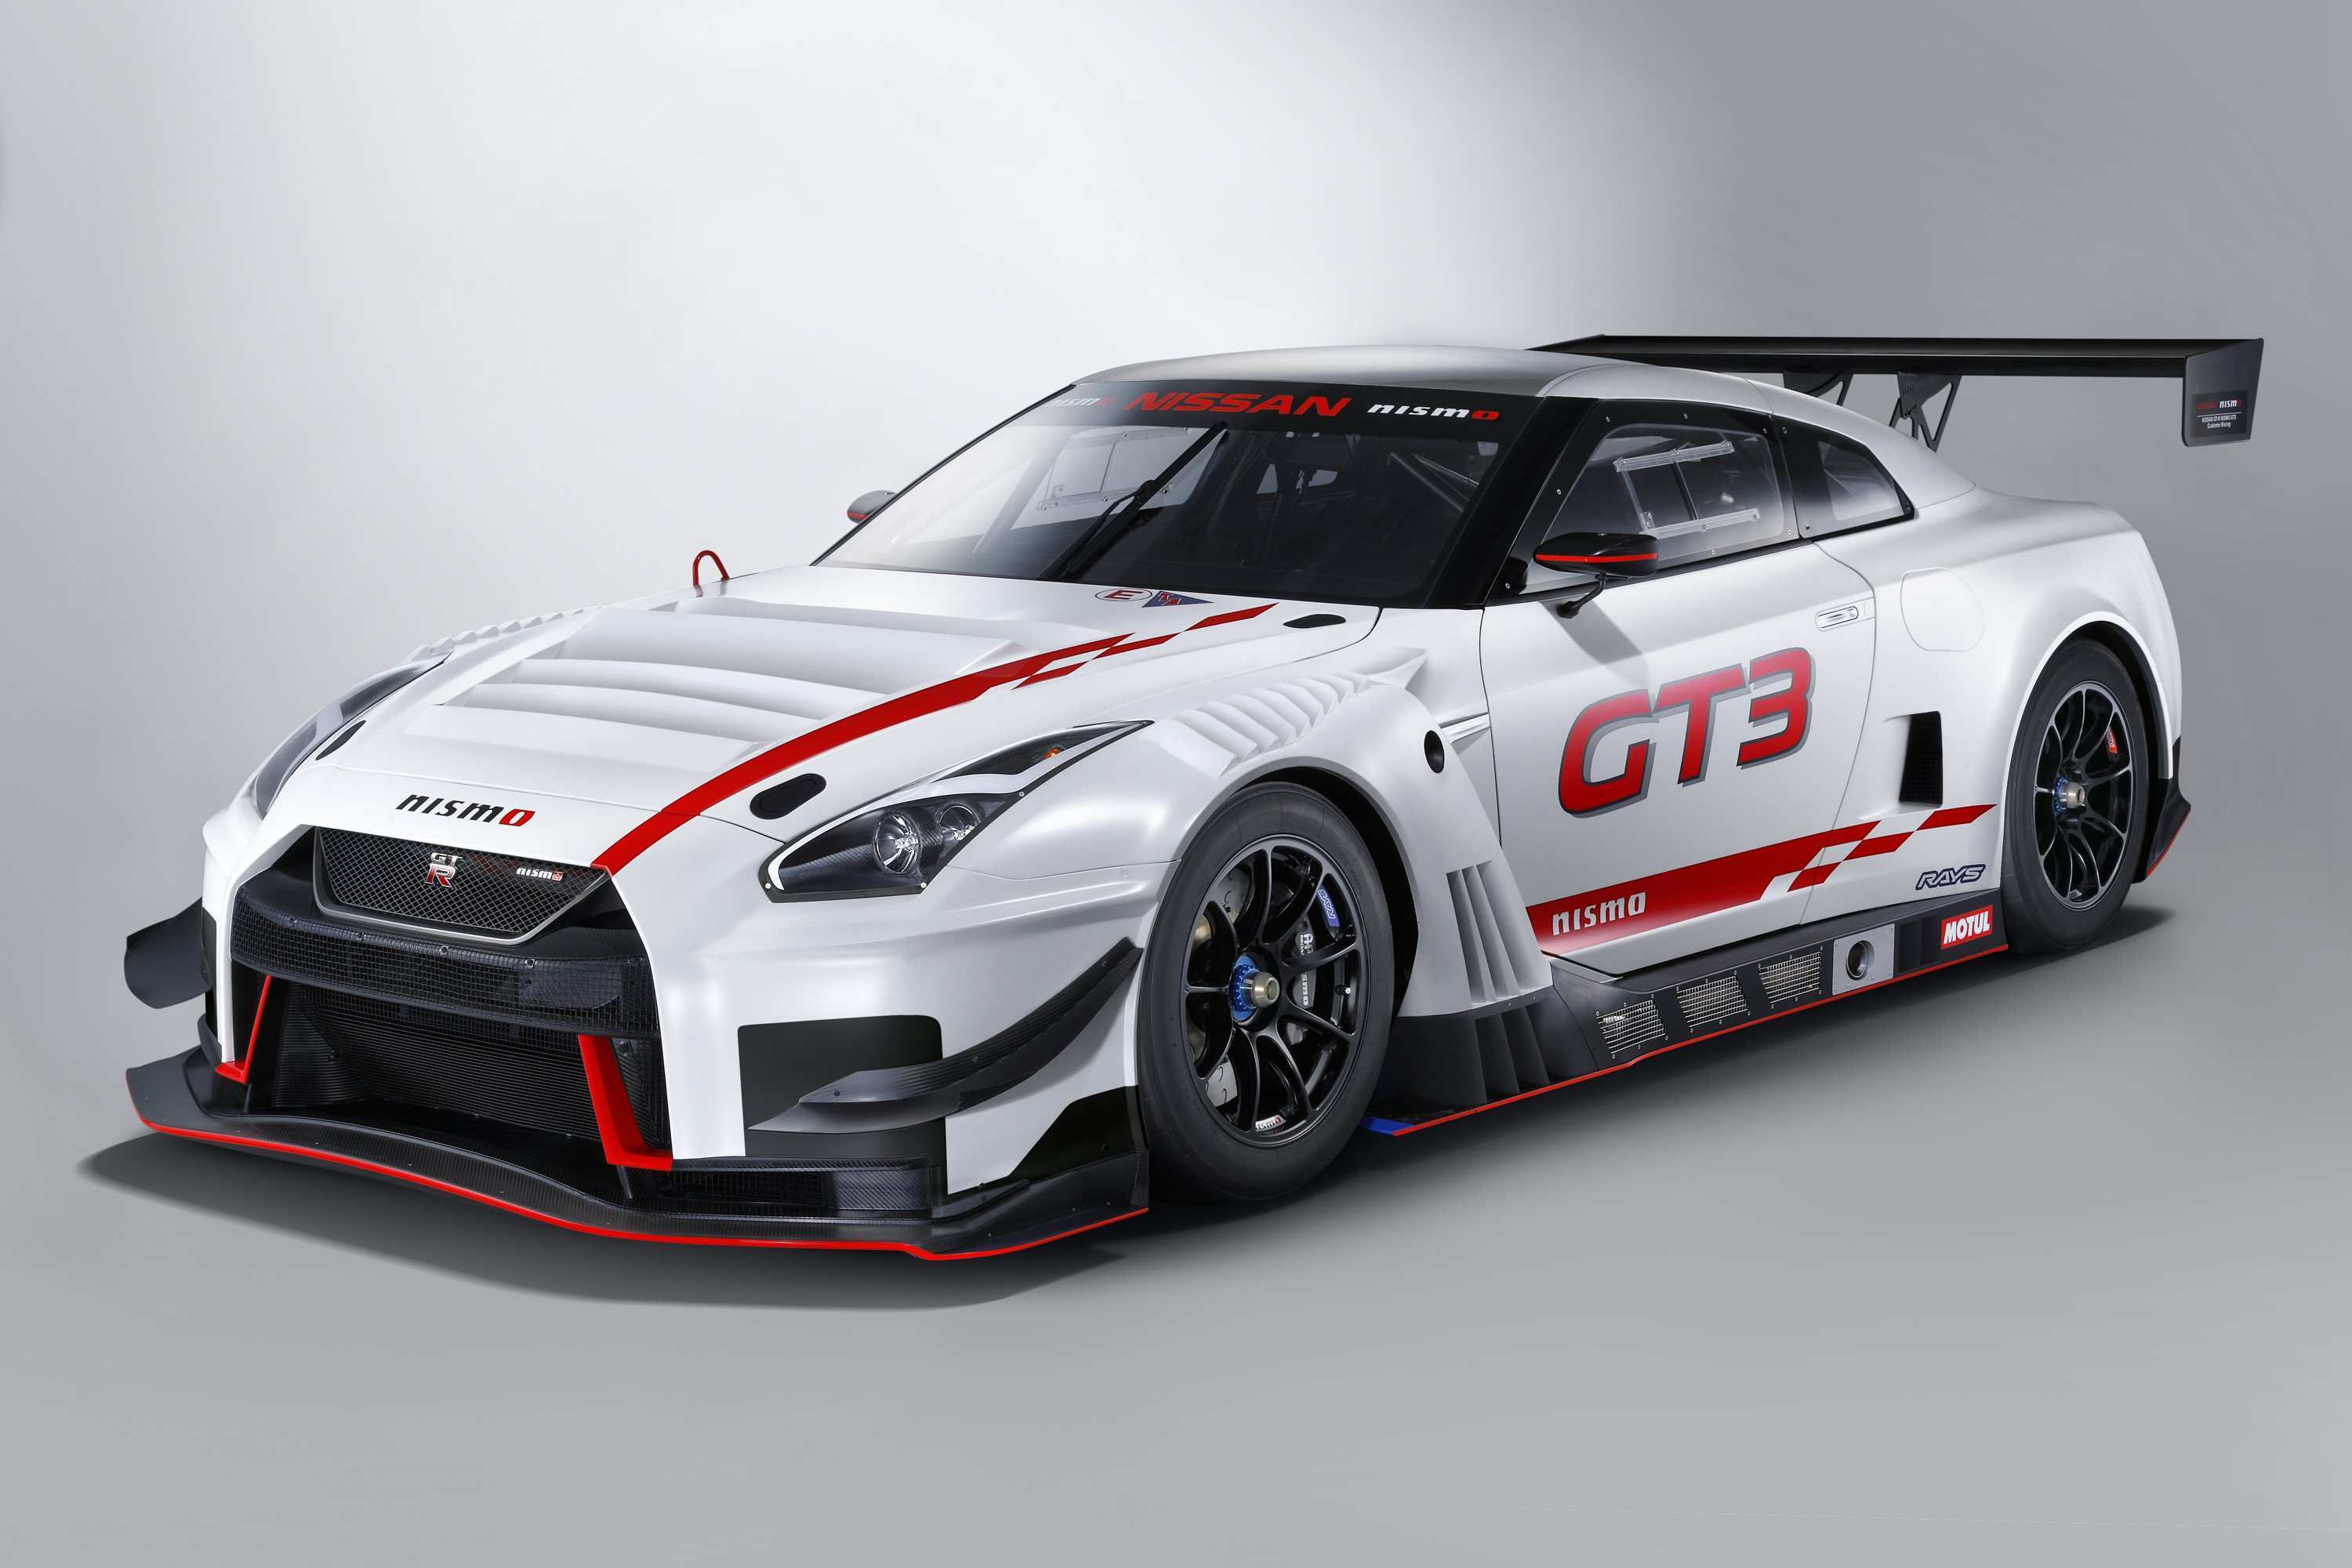 47 The Nissan Gtr 2019 Top Speed Specs and Review with Nissan Gtr 2019 Top Speed